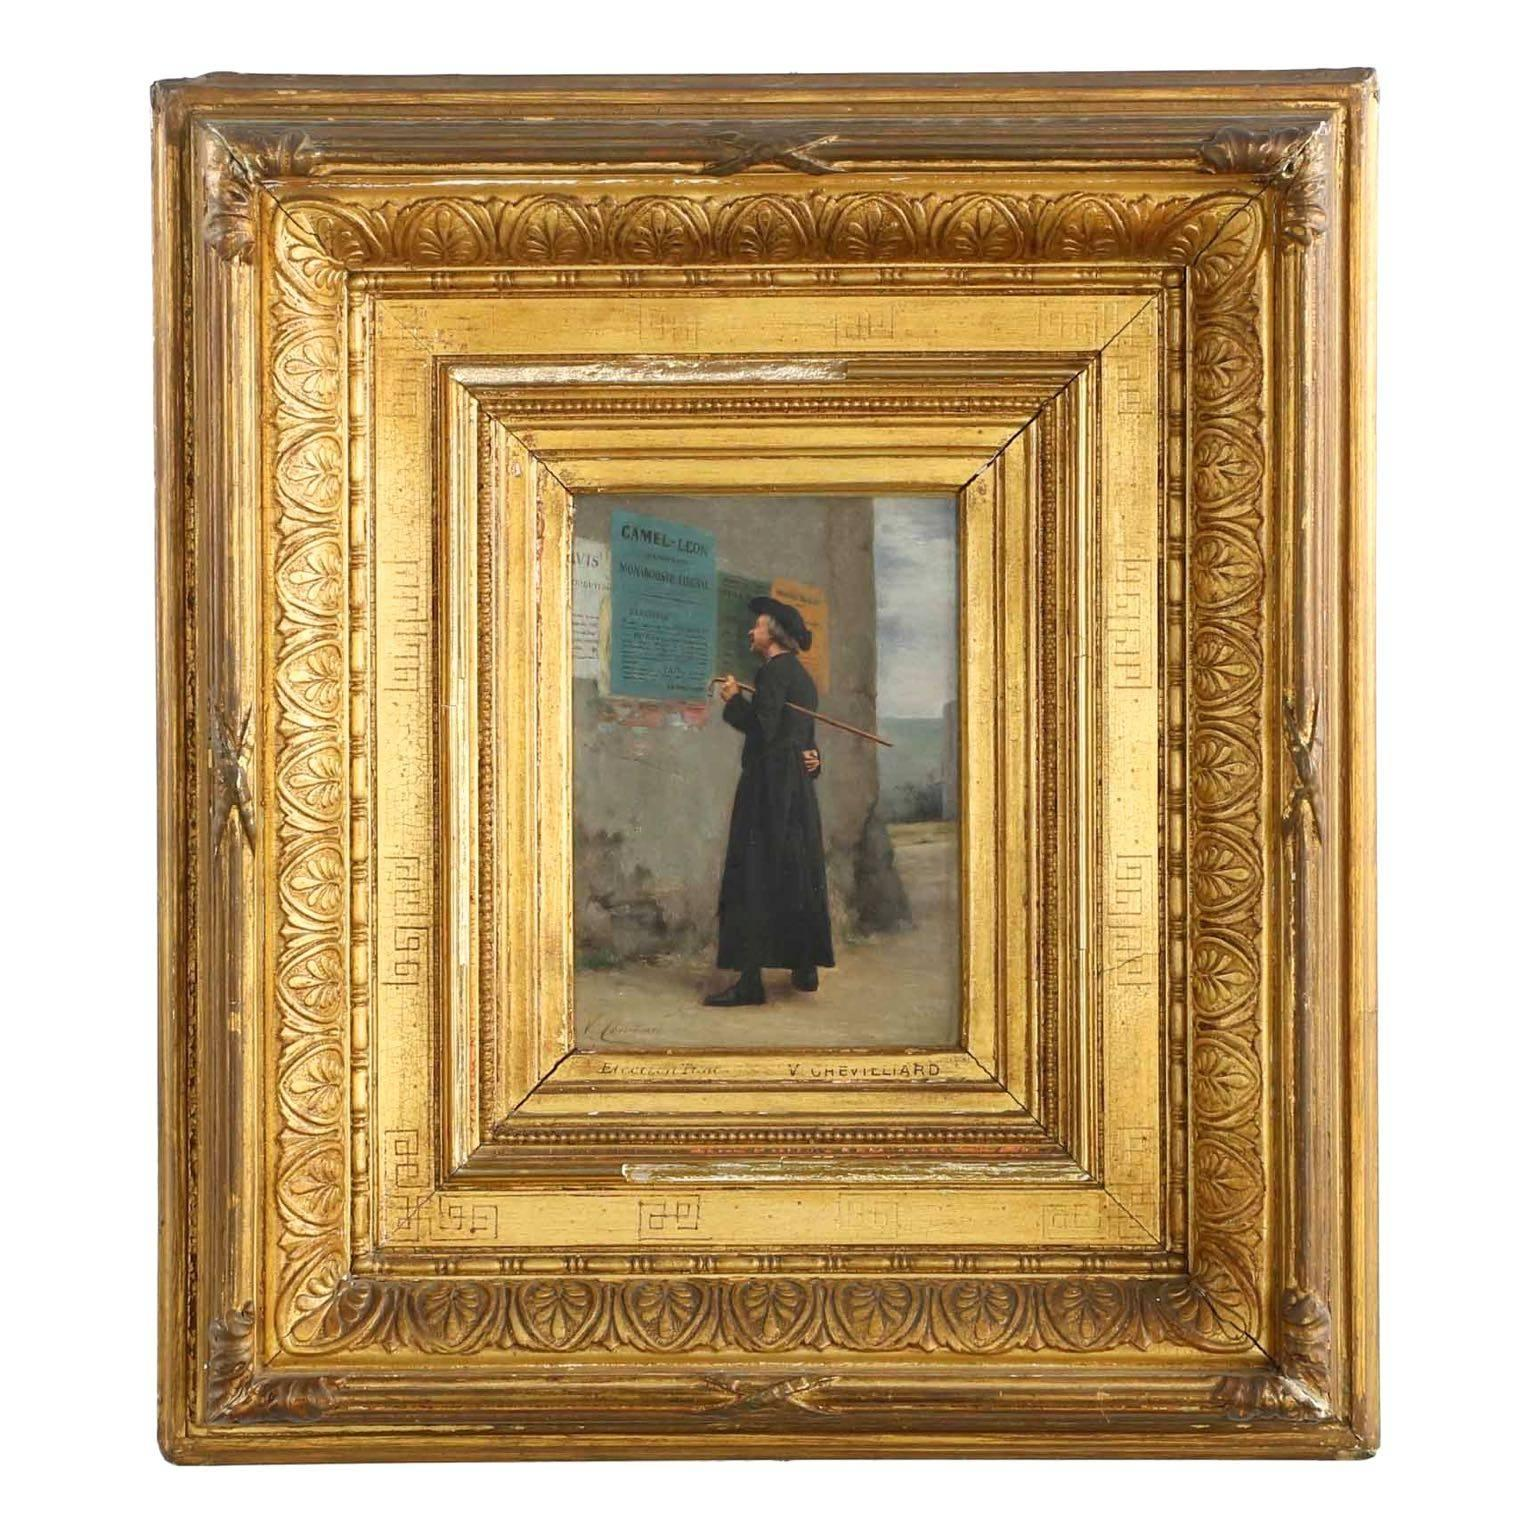 Supper Time by Edouard Frere For Sale at 1stdibs